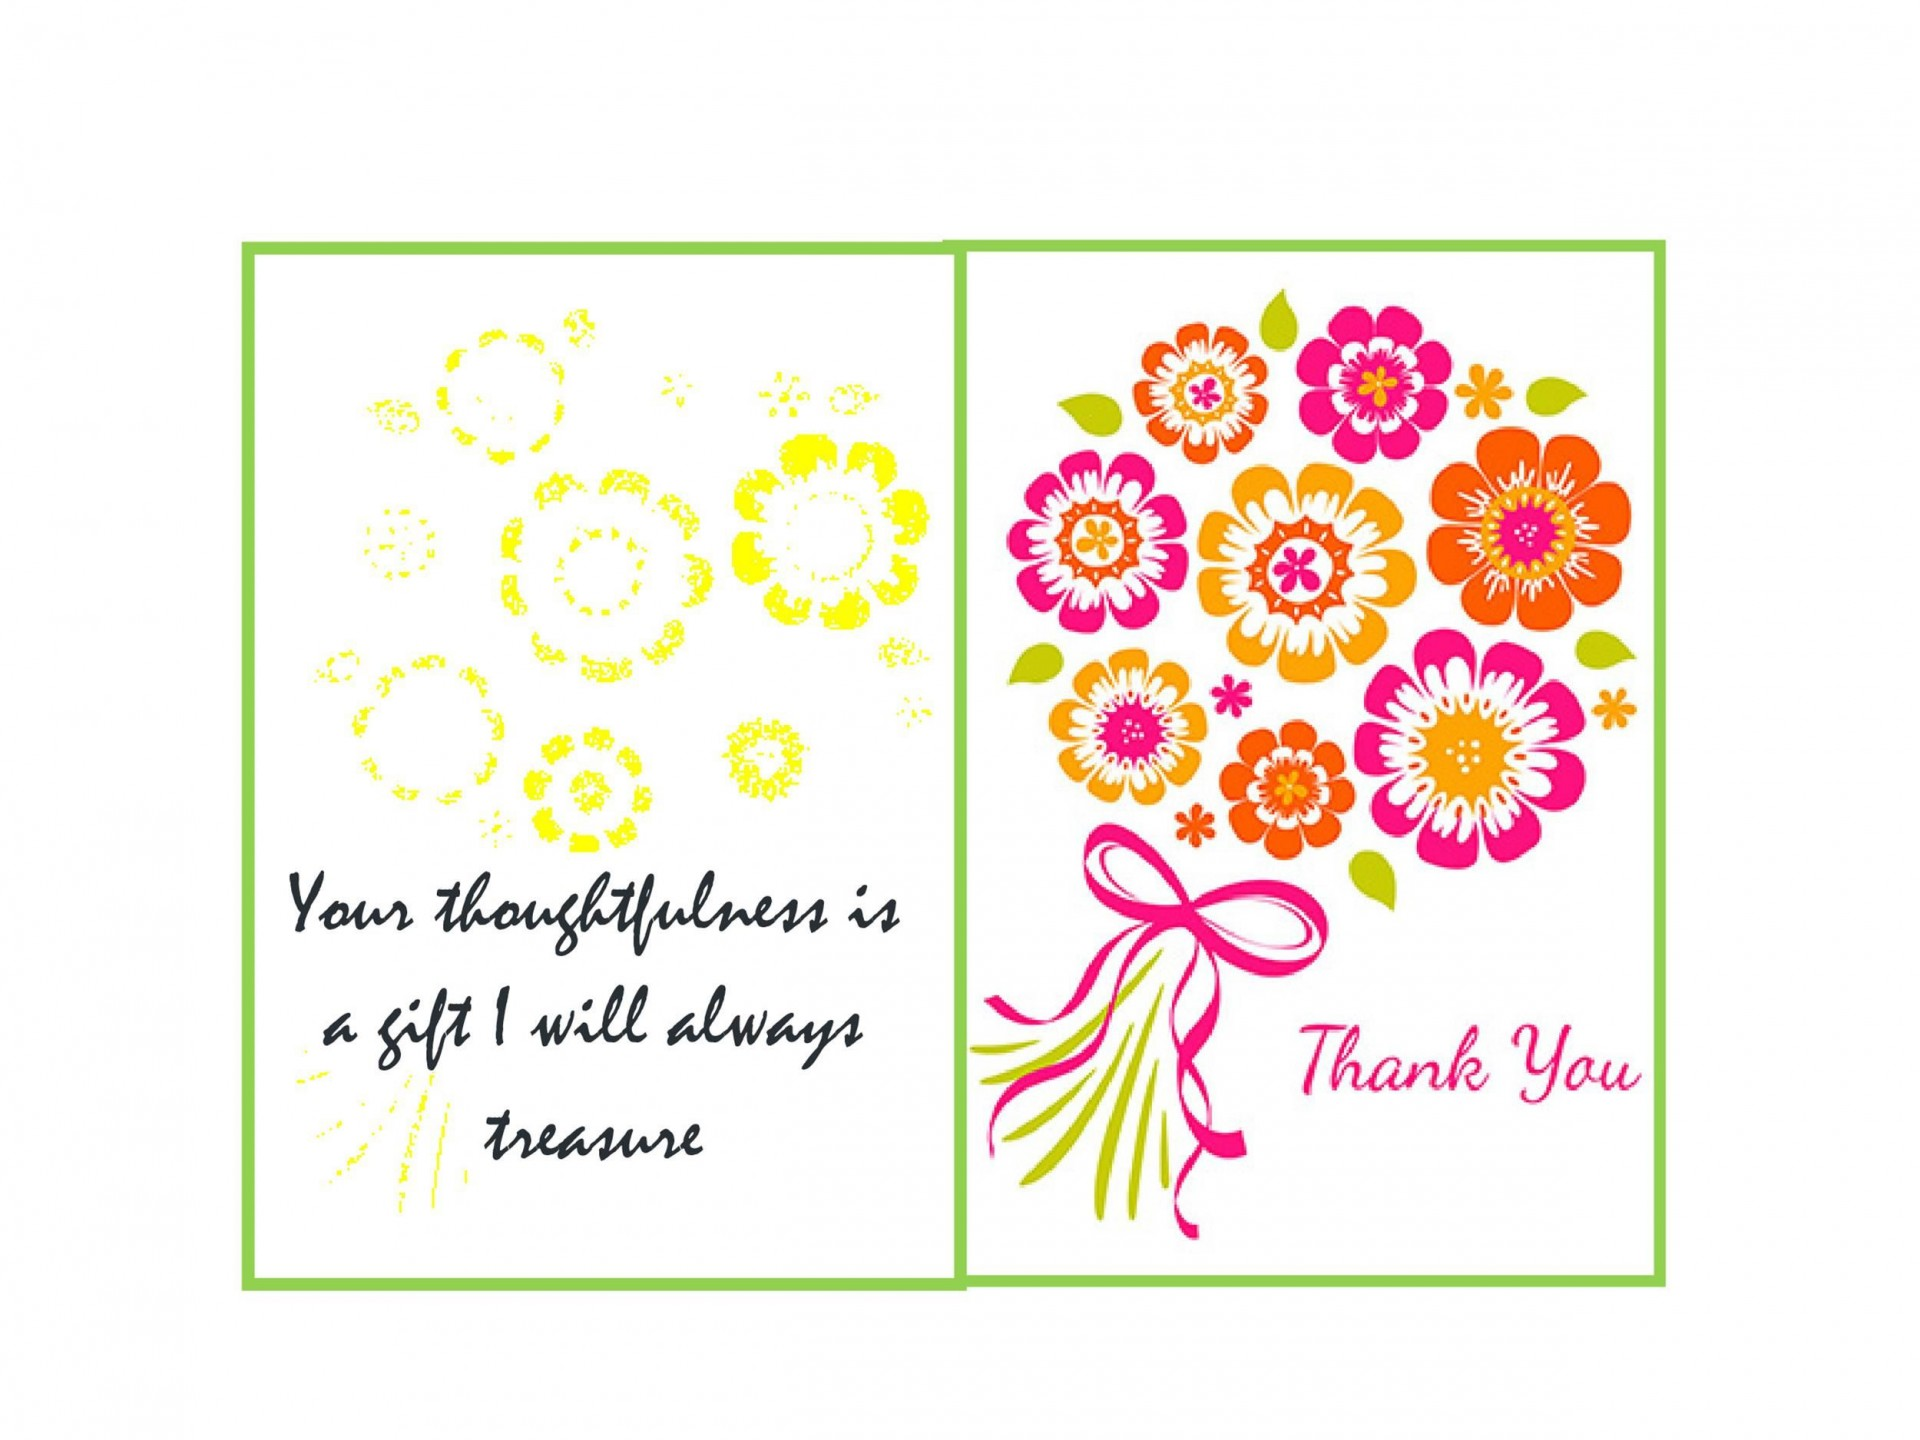 007 Marvelou Thank You Card Template Inspiration  Wedding Busines Word Free1920